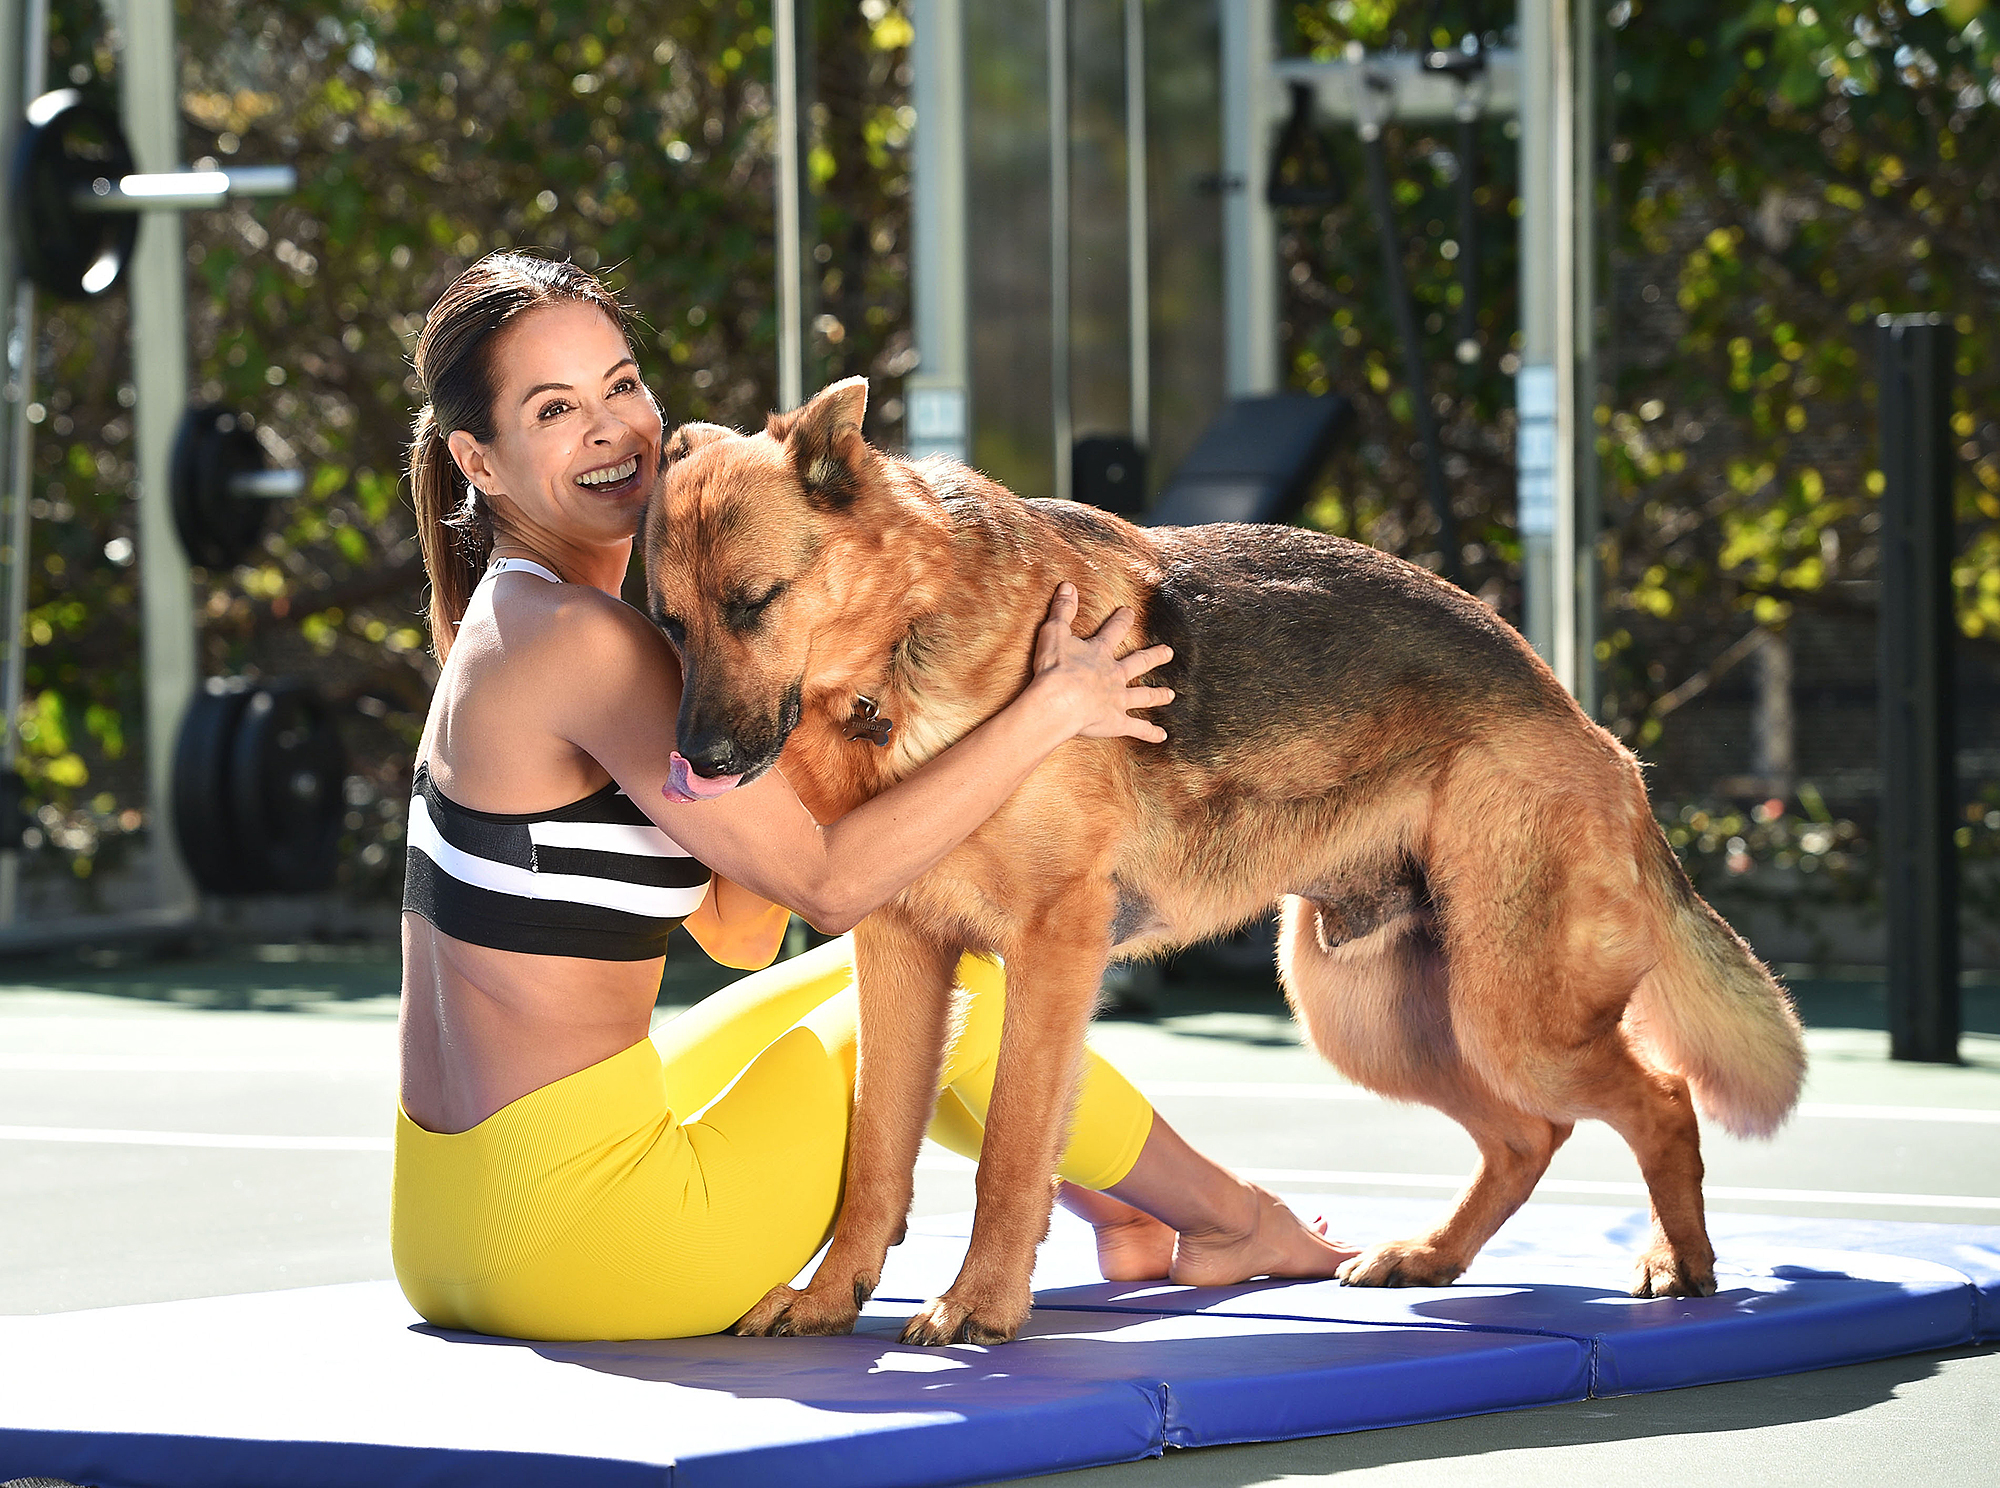 Brooke-Burke's-Go-To-Exercises-to-Do-in-the-Backyard - After your strengthening session, stretch any muscles you feel could use a little love. Feel free to rest on your back or sitting up and gather your thoughts — a furry friend never hurts!